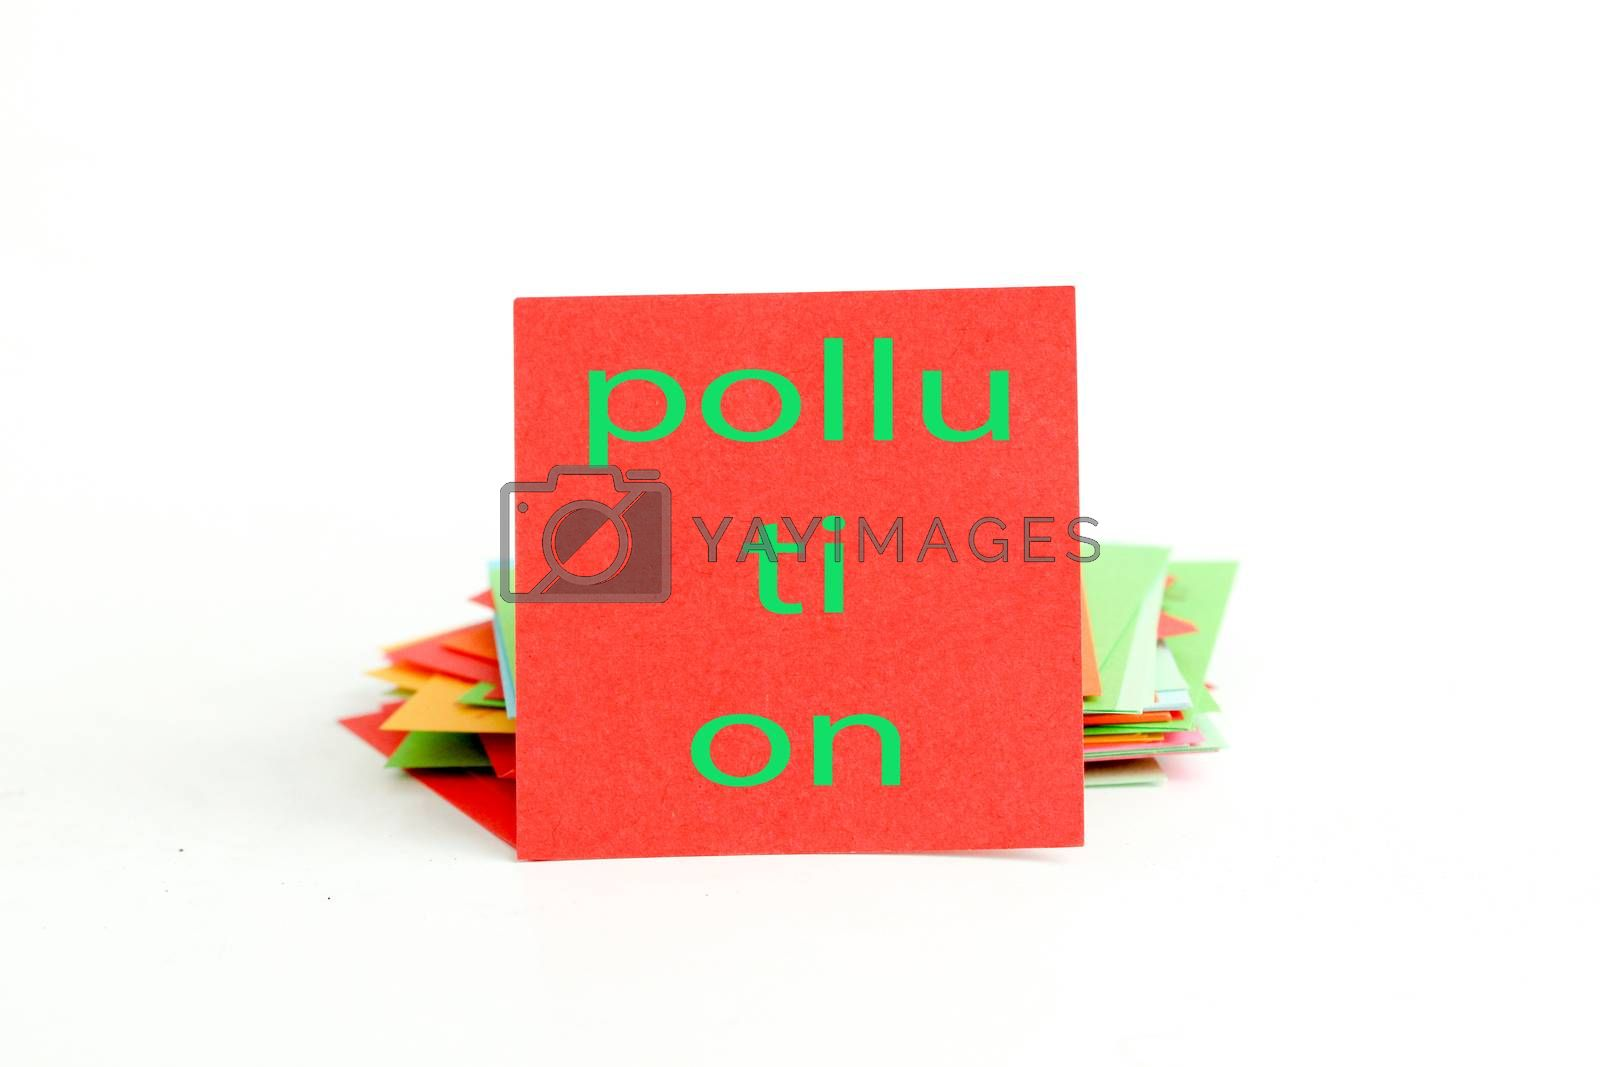 picture of a red note paper with text pollution